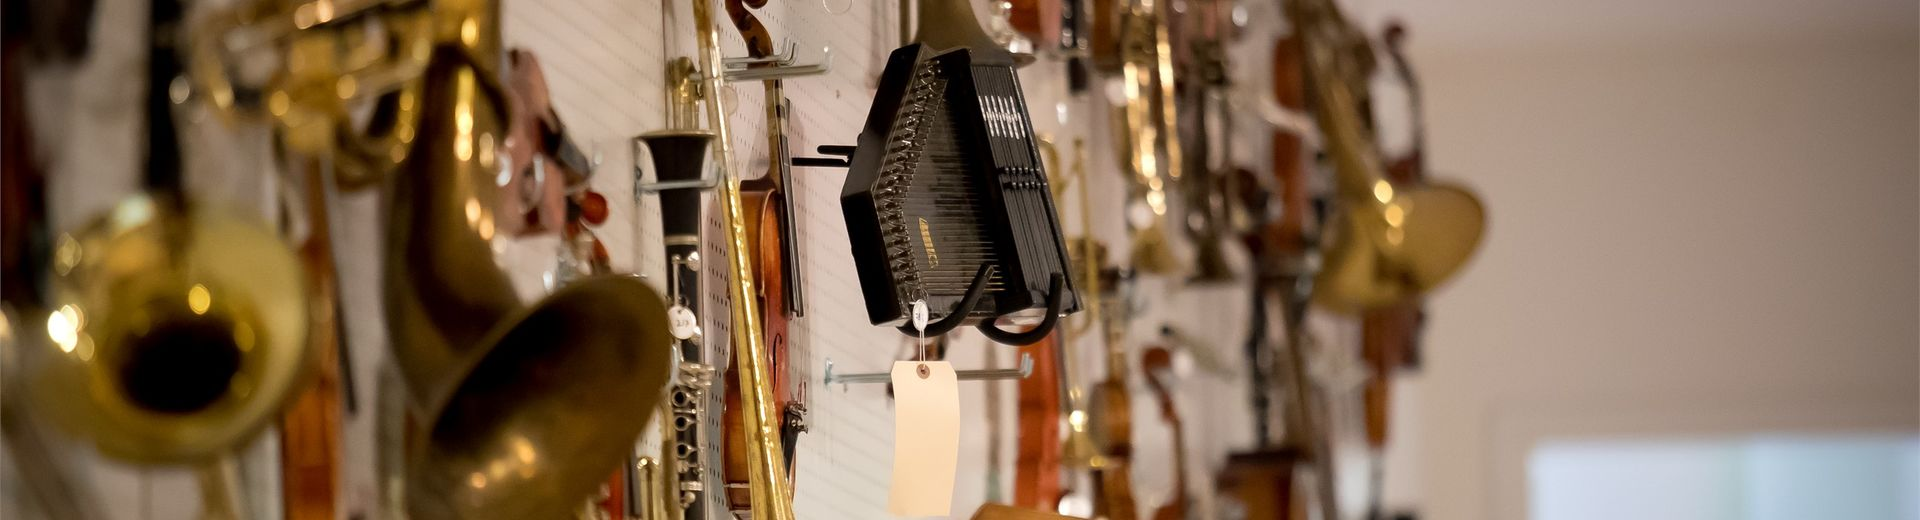 Photo of different musical instruments hanging on a wall.